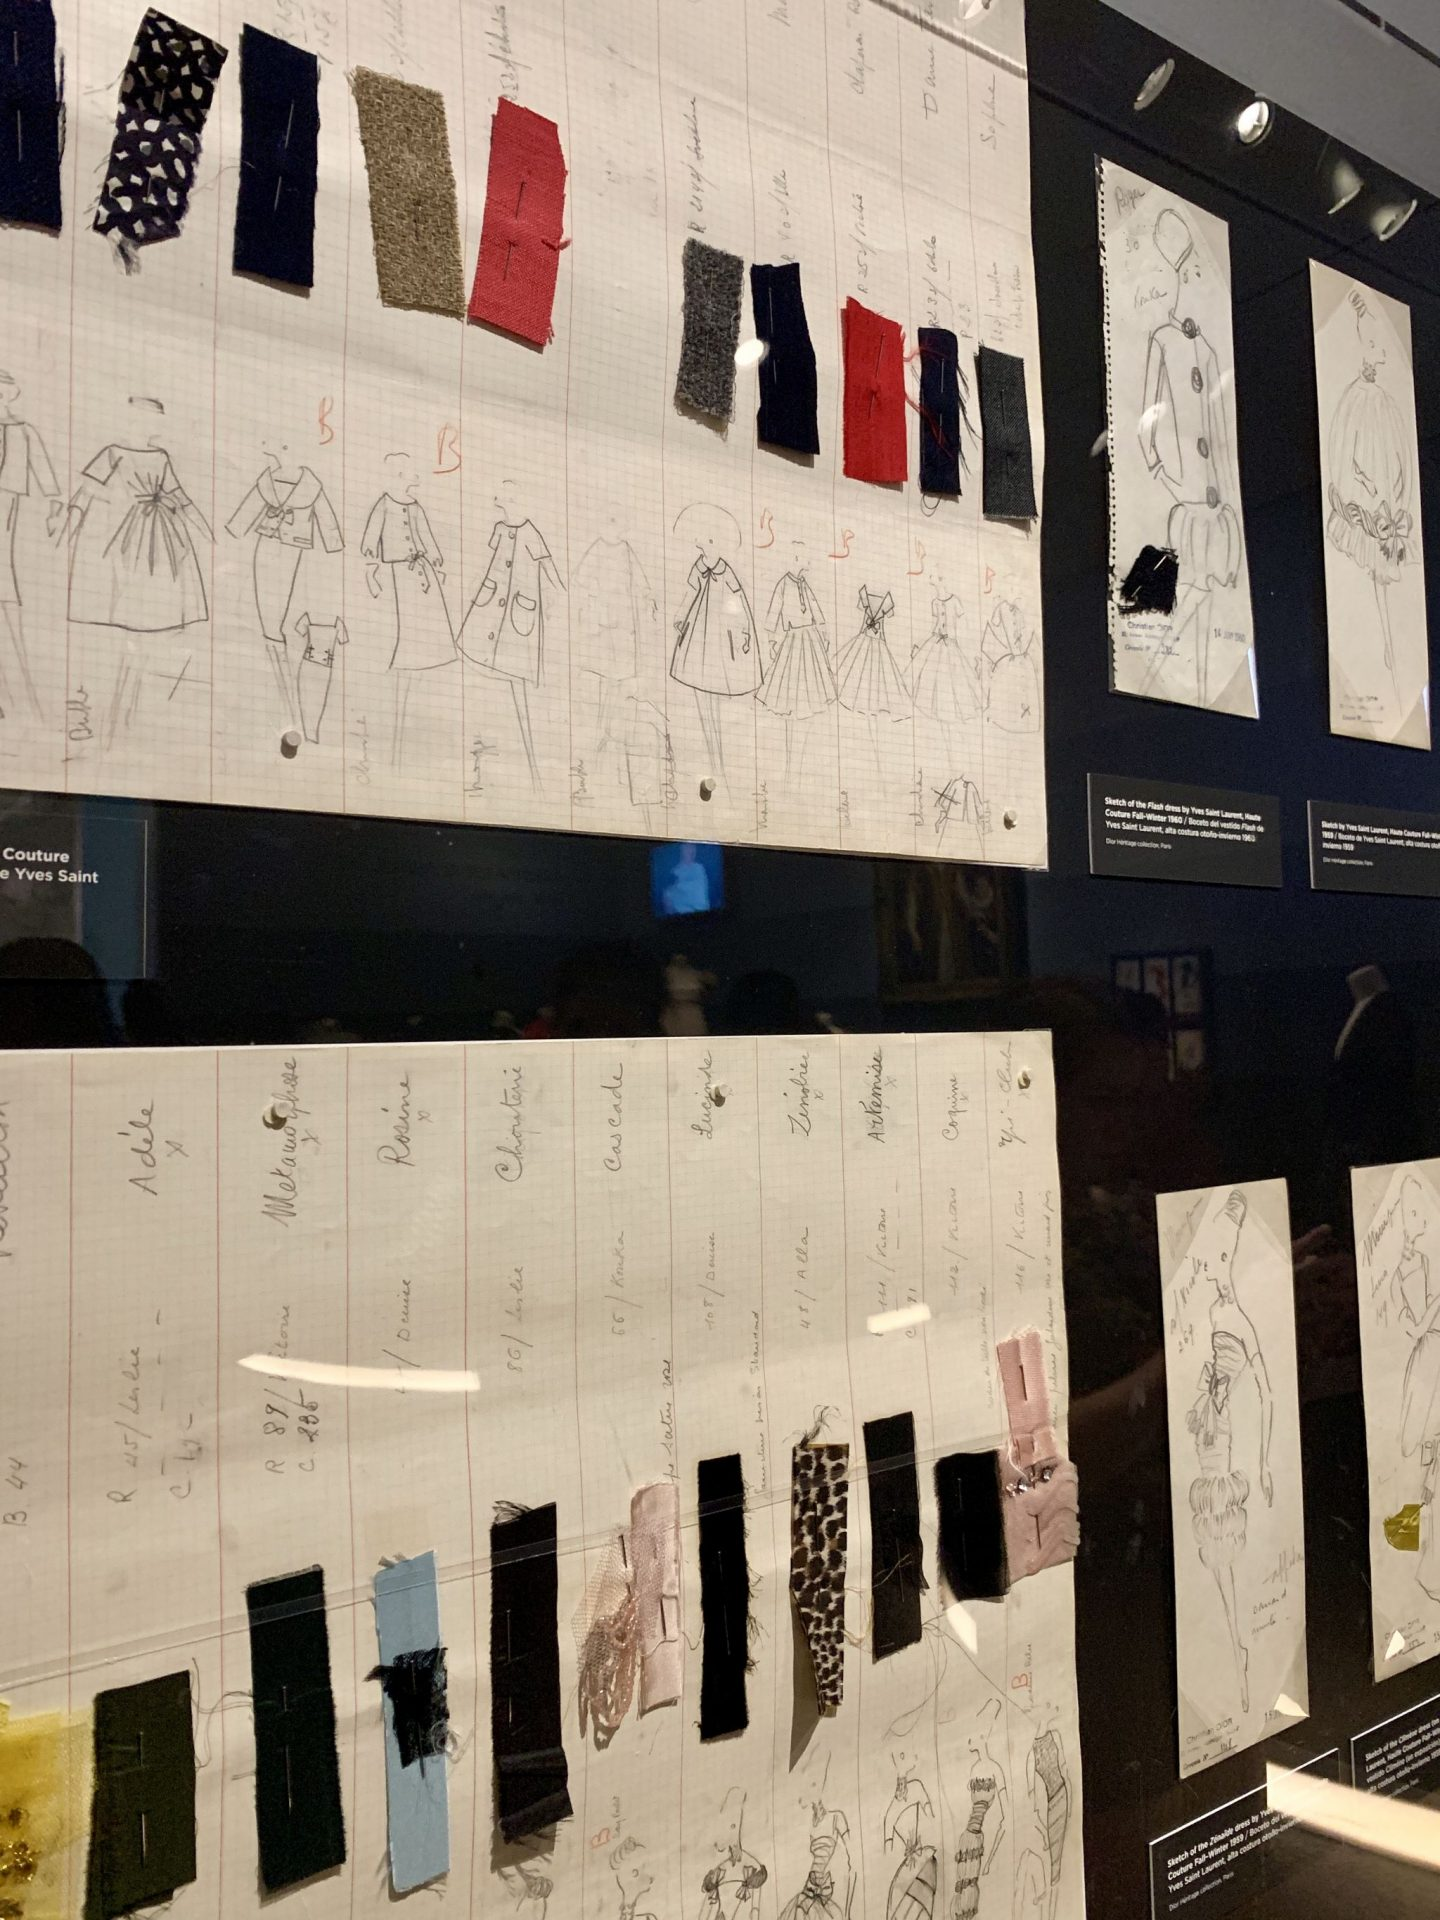 Christian Dior Art Exhibit at the Dallas Museum of Art fabric swatches inspiration